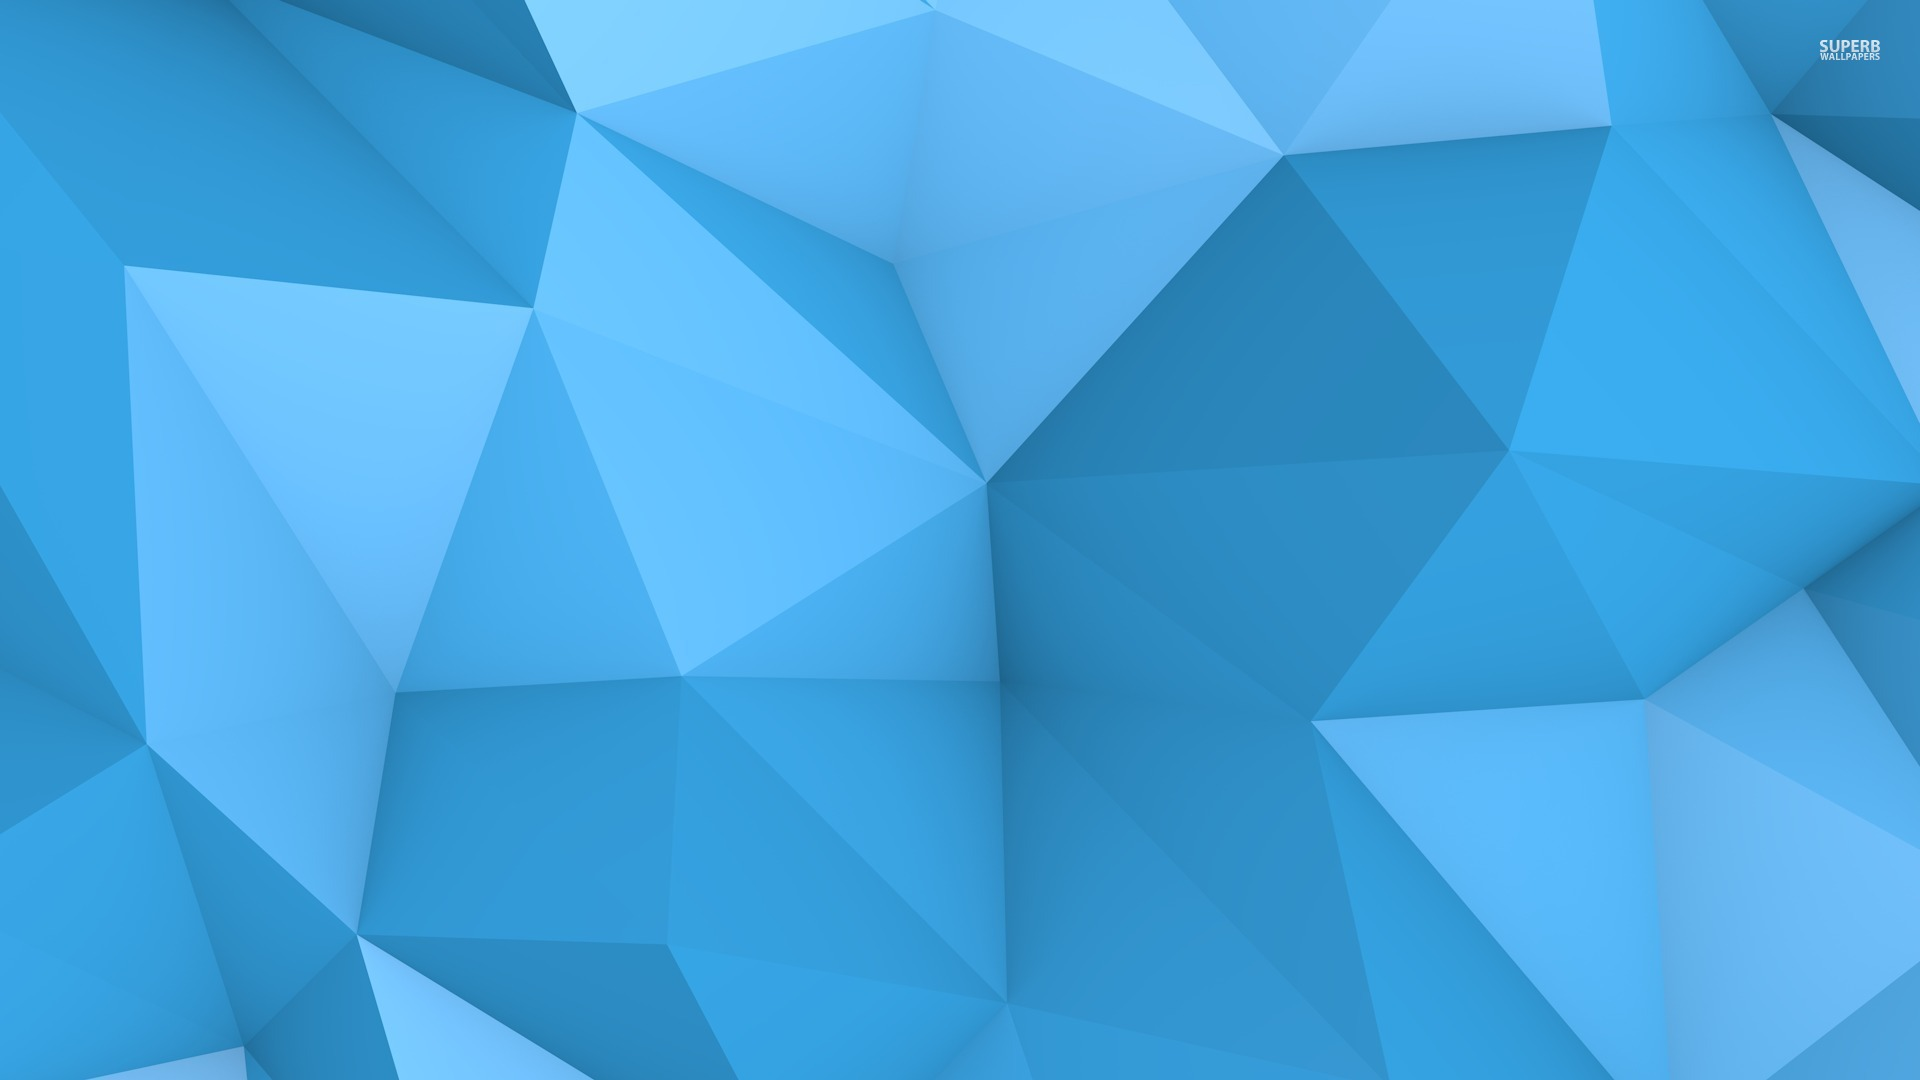 Blue polygon wallpaper 1920x1080 jpg